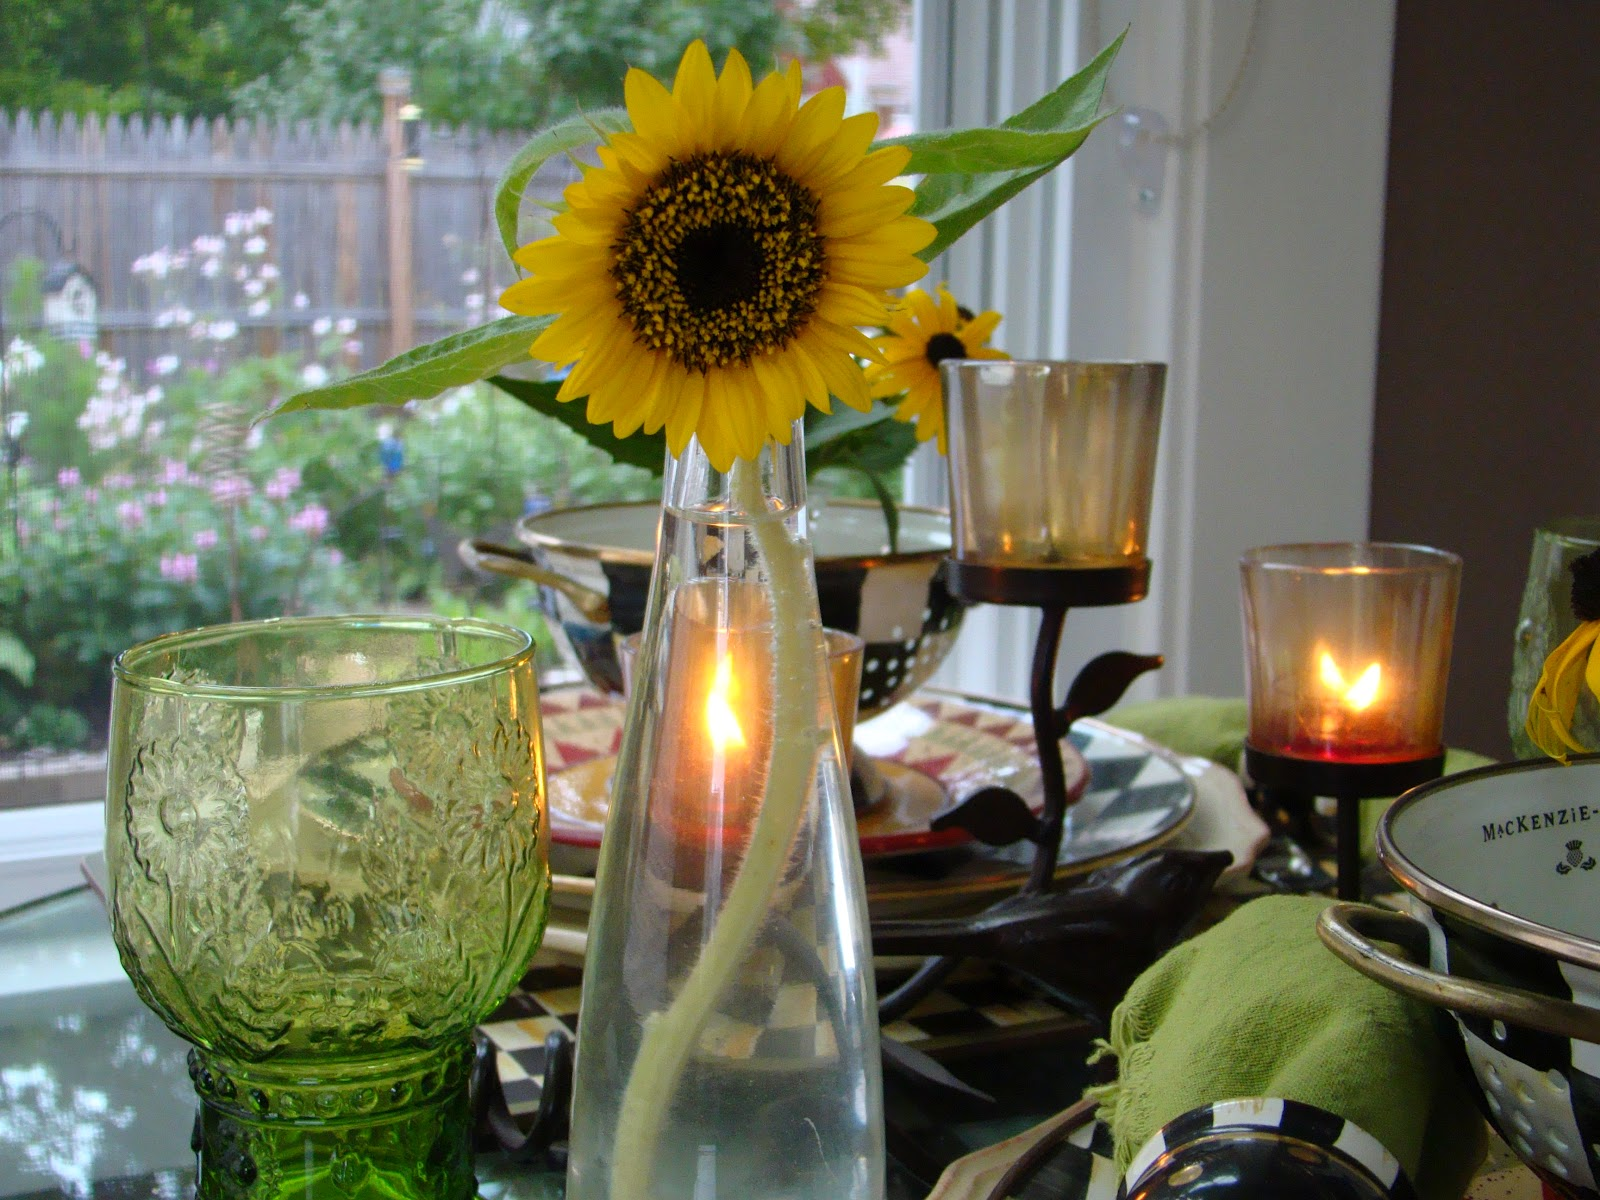 This solitary sunflower inspired our table setting this week. In May several sunflower seeds were sowed in our backyard and the squirrels did a happy ... & MACKENZIE-CHILDS TABLESCAPE AND THE SOLITARY SUNFLOWER - Mountain ...